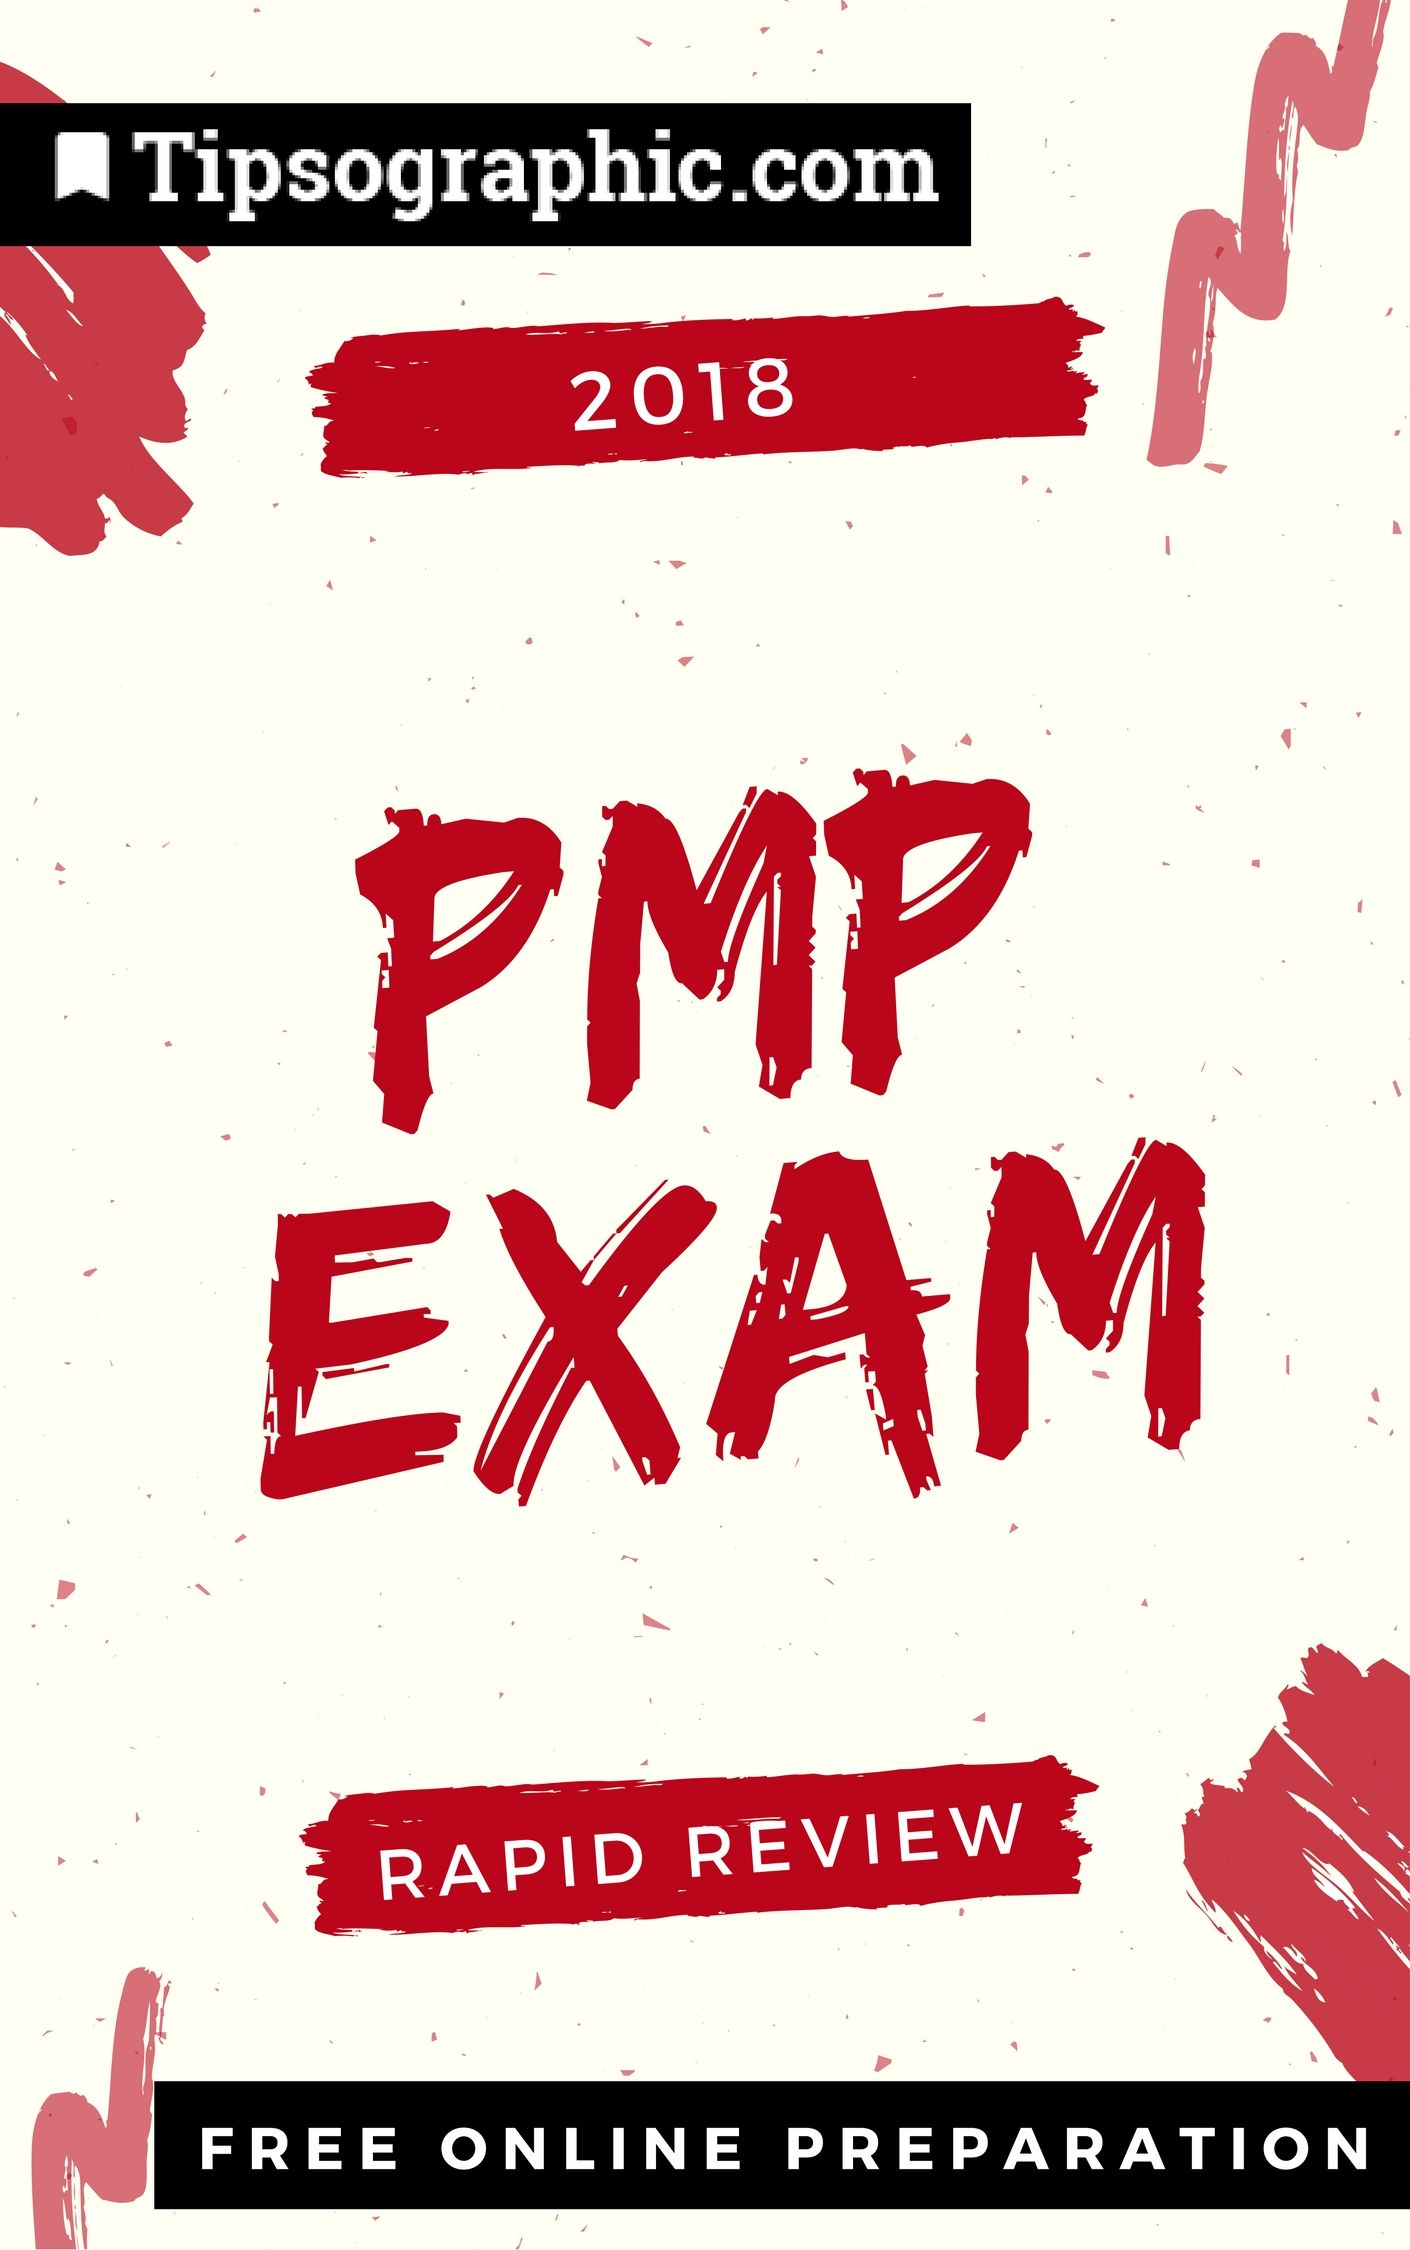 Pmp Exam 2018 Rapid Review Free Online Preparation Based On